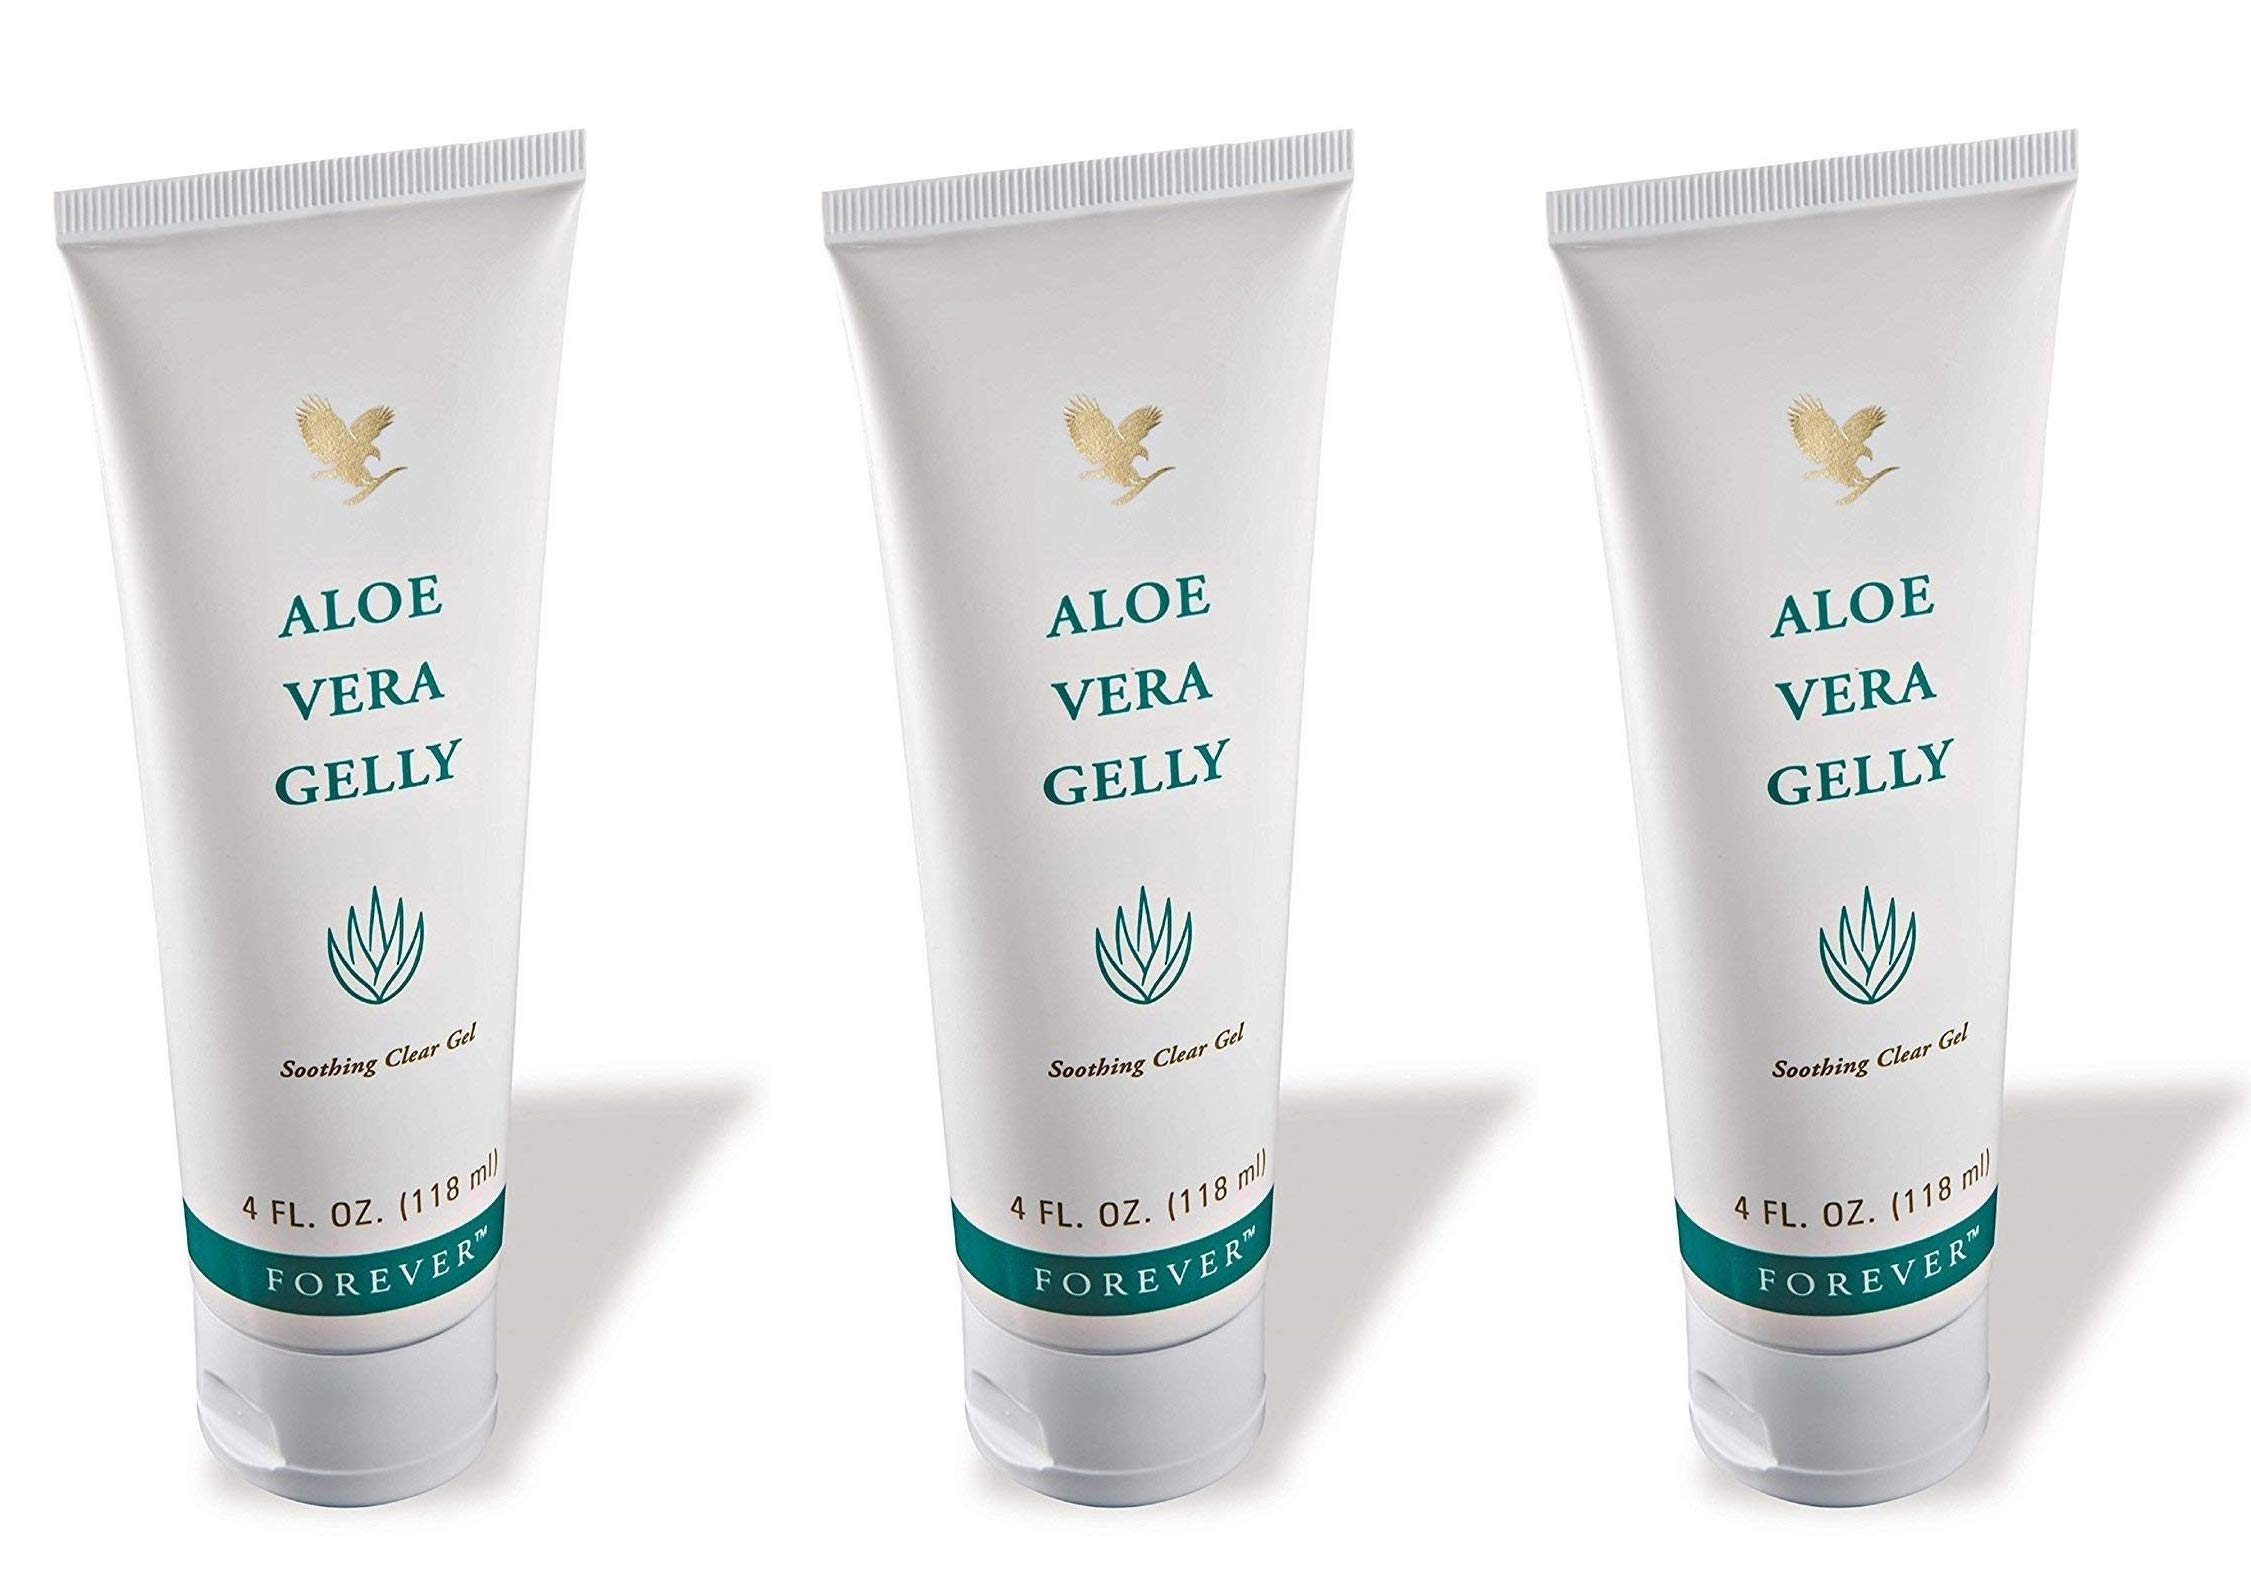 Forever Living Aloe Vera Gelly, 4 Fl. Oz,100% stabilized aloe vera gel (3 Pack) by Forever Living